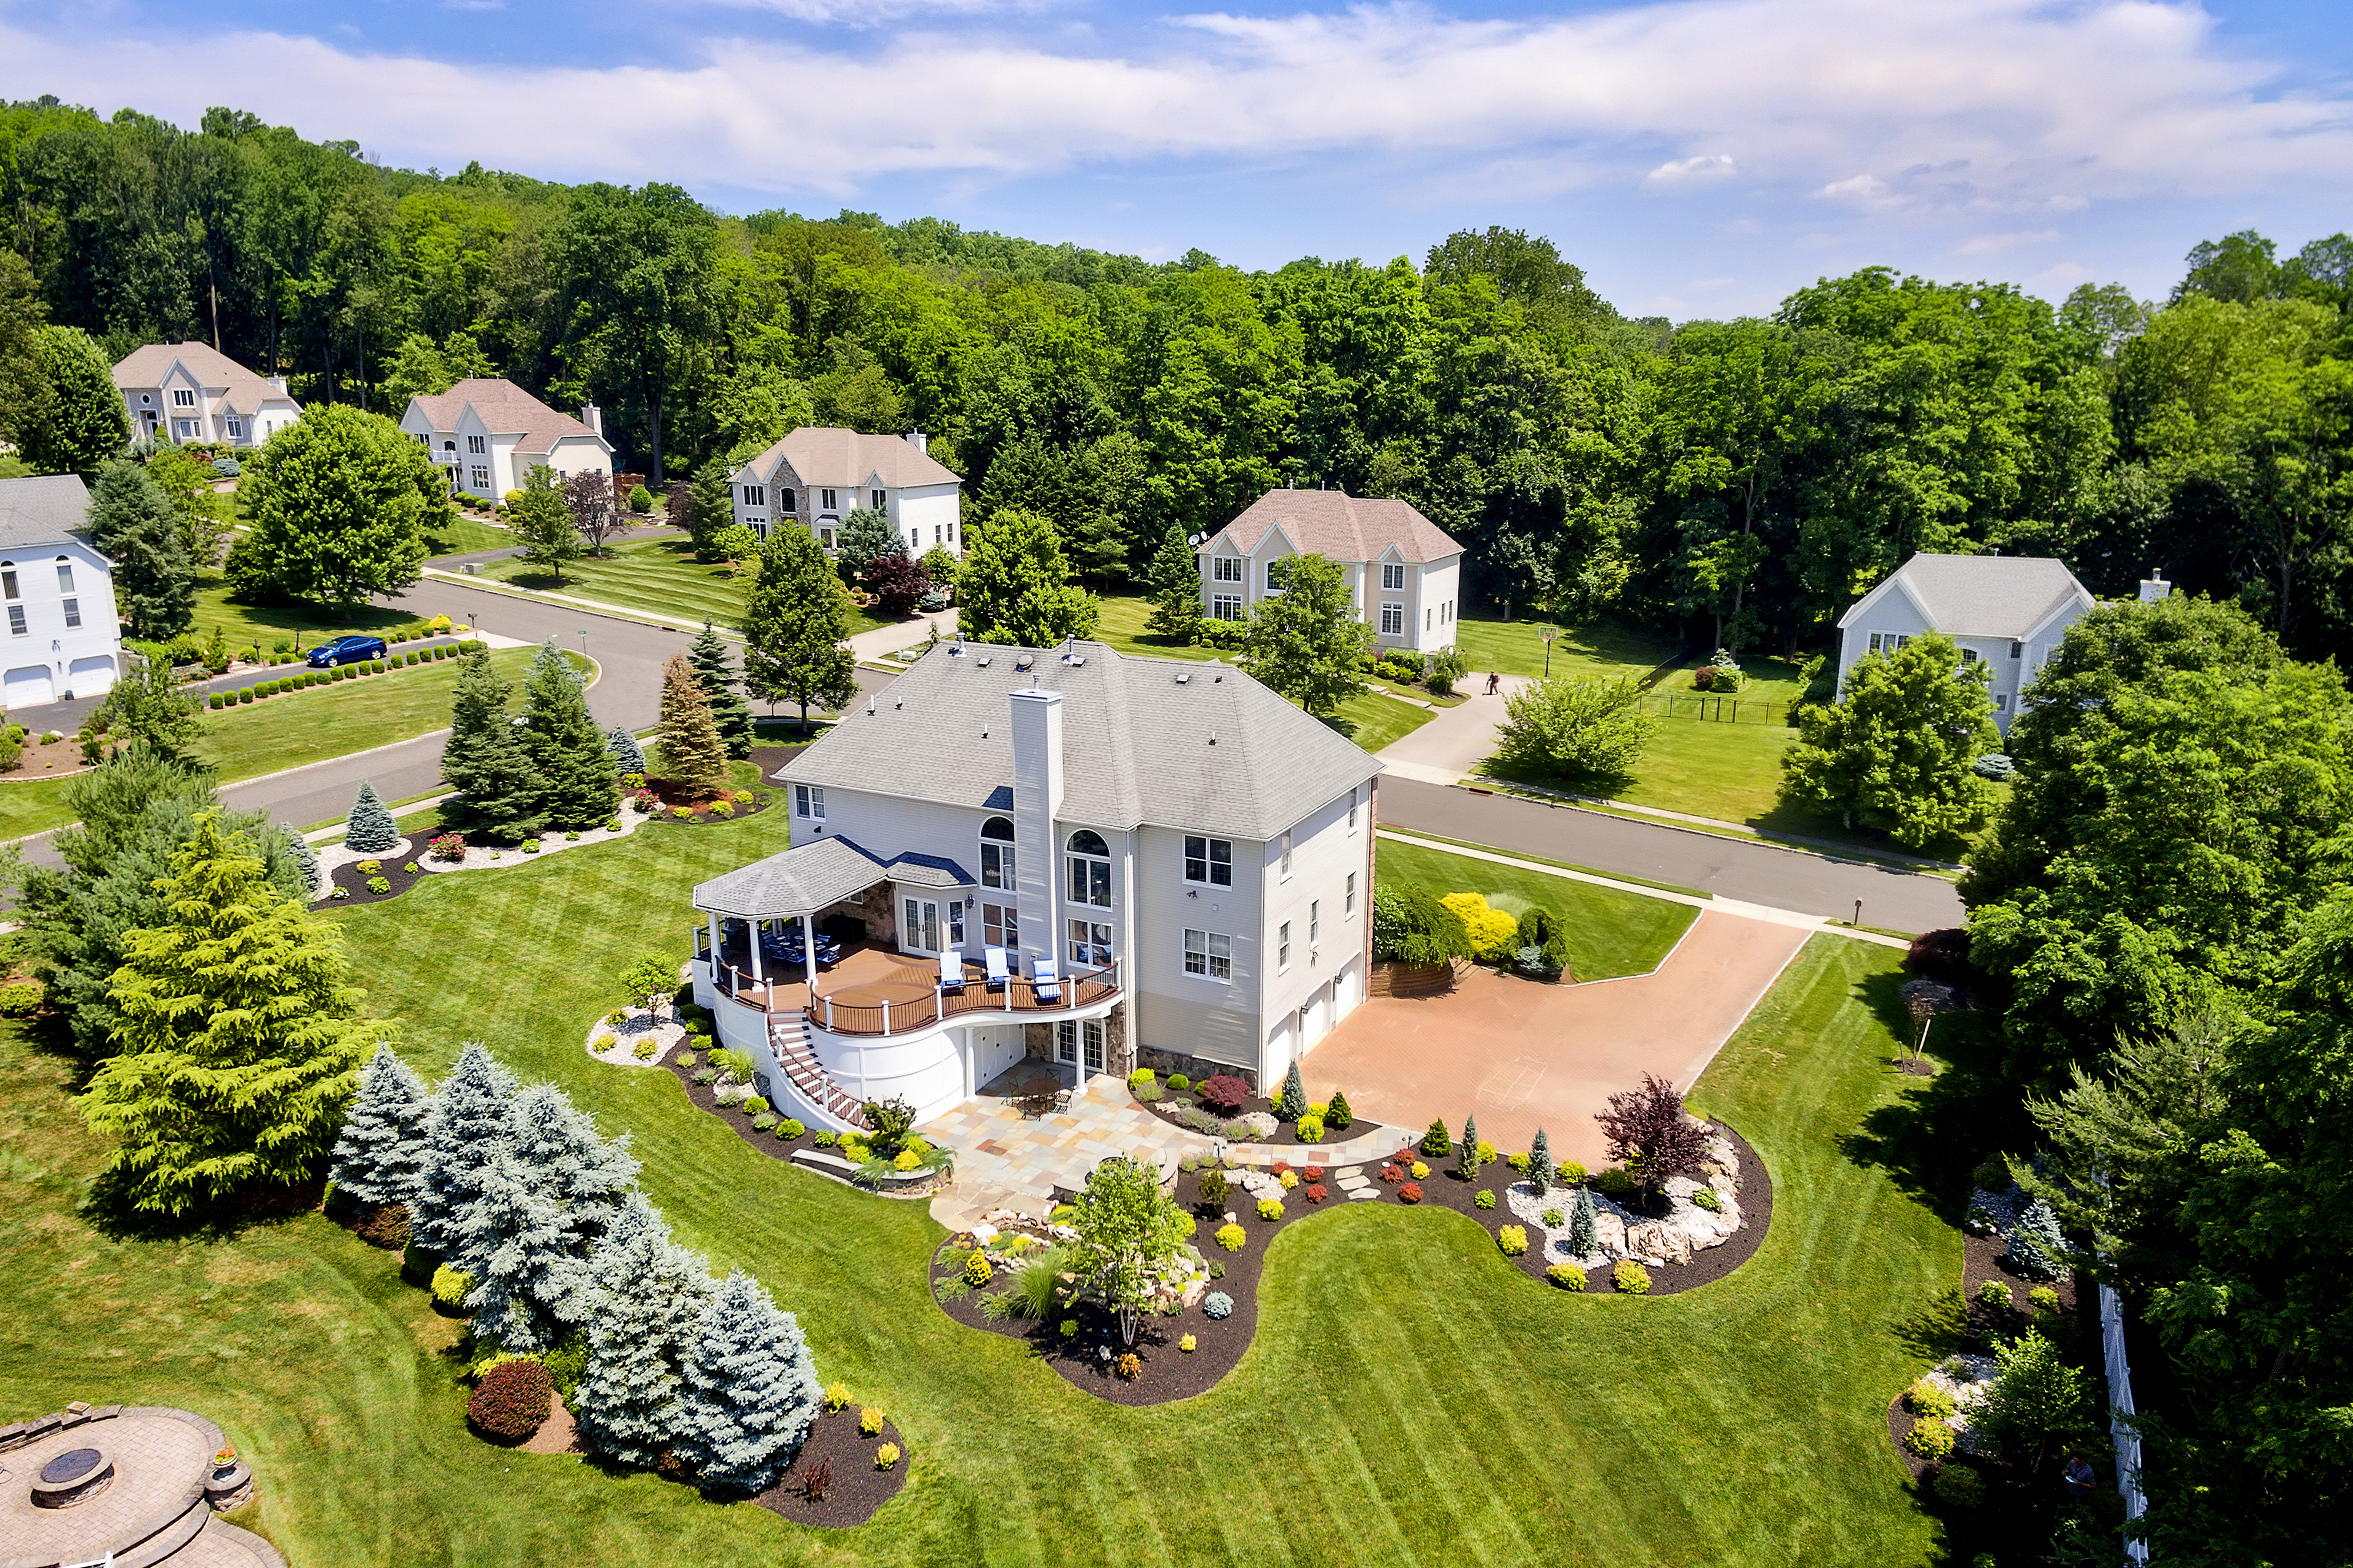 The Best Landscape Designers in Morris County NJ Do These 3 Things